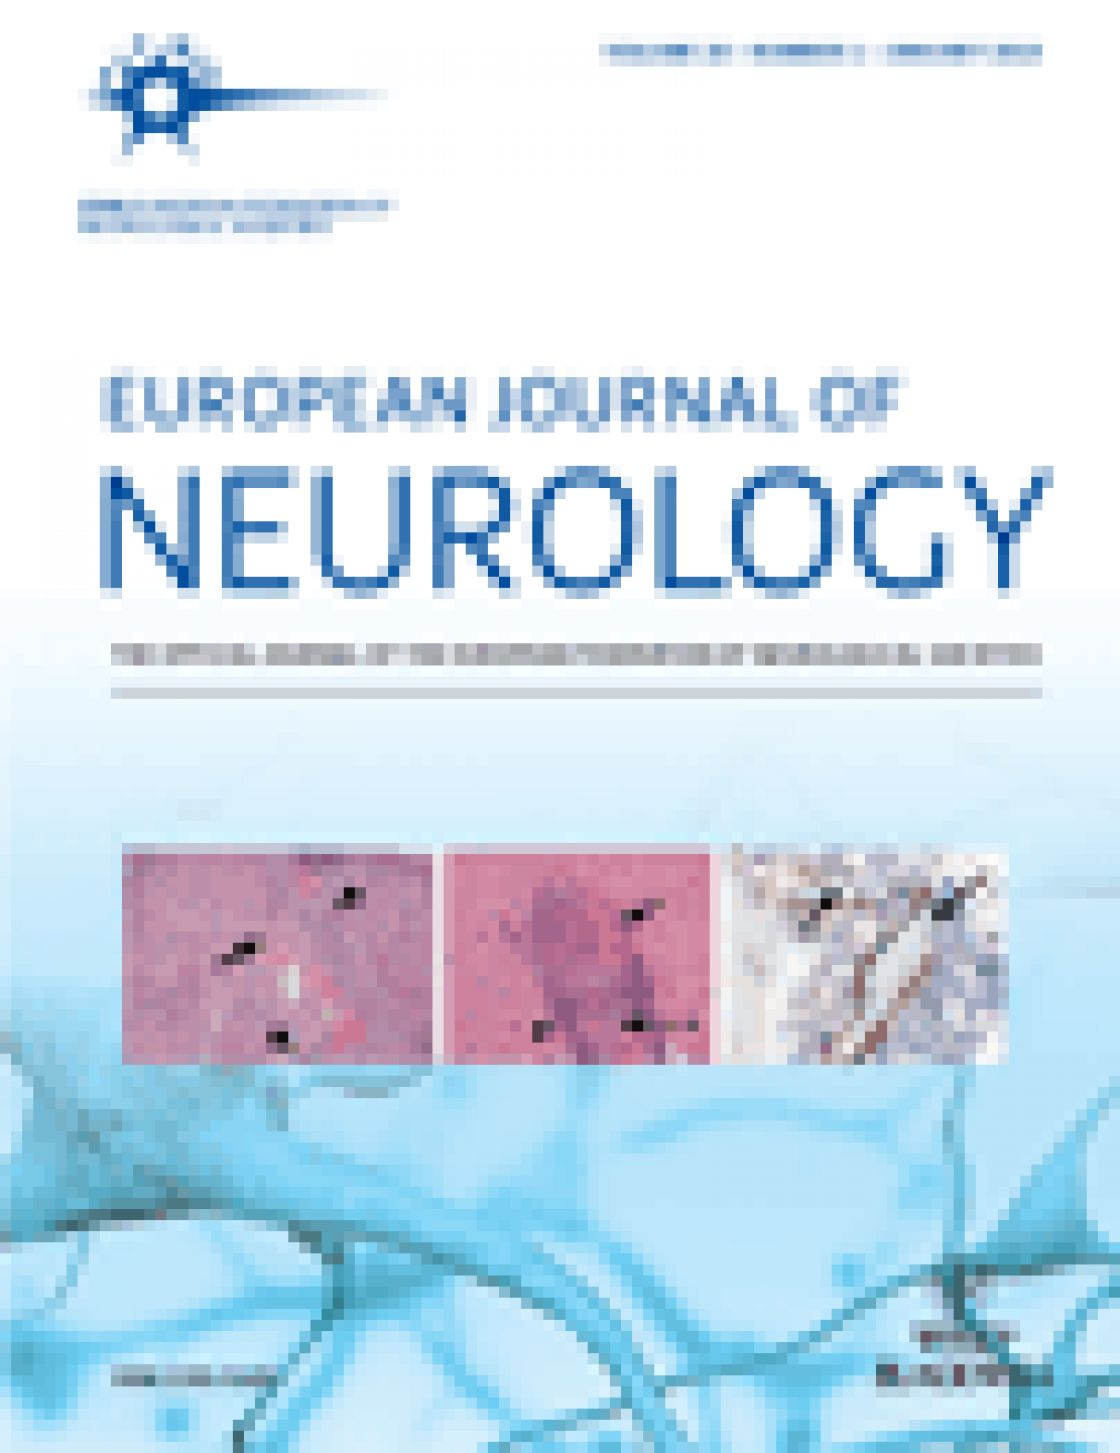 Loss of temporal retinal nerve fibers in Parkinson disease: a mitochondrial pattern?